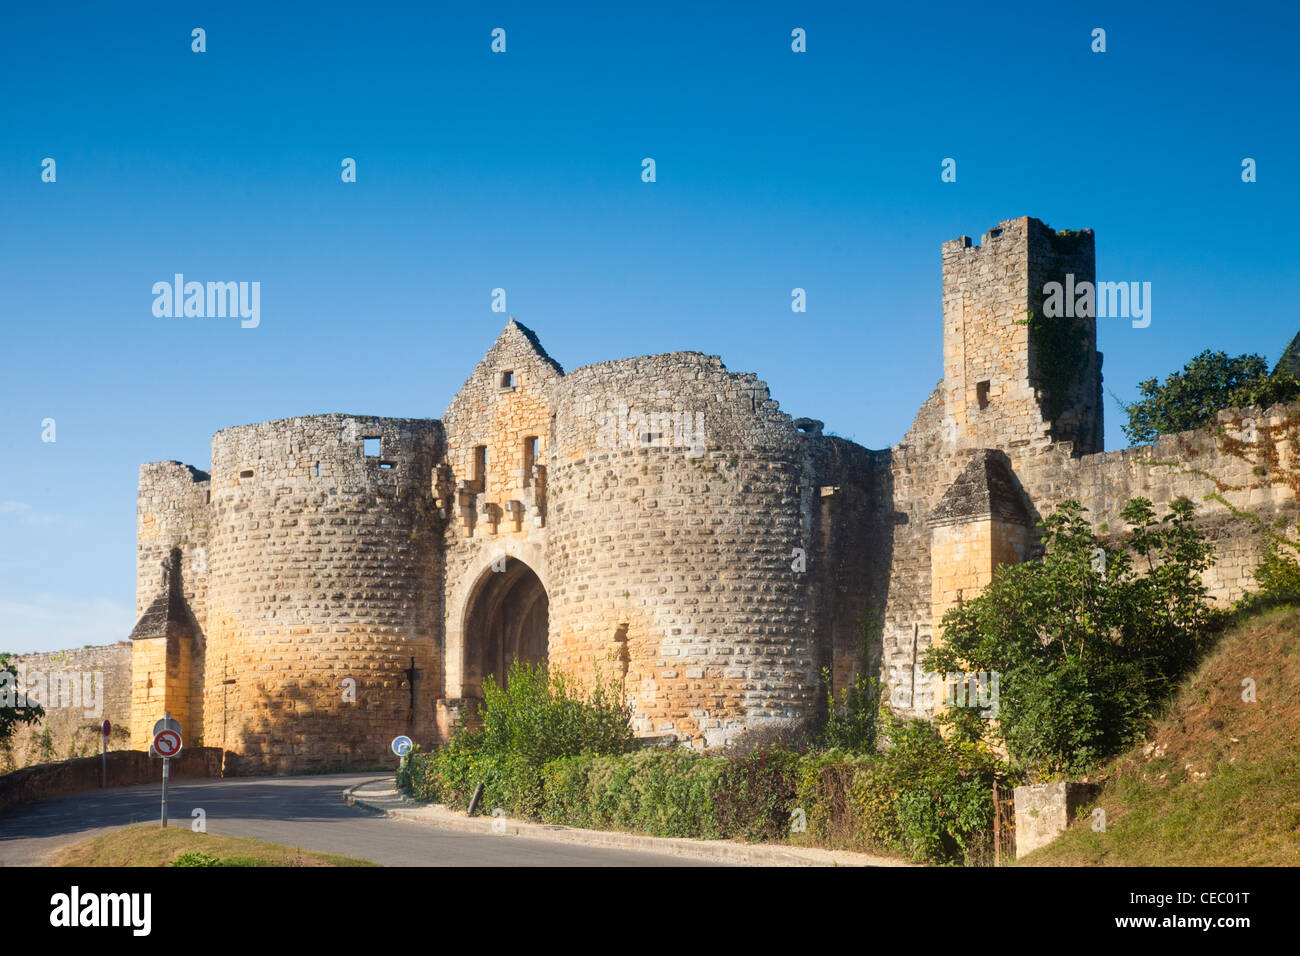 The main gate of the bastide of Domme, Aquitane, France. - Stock Image